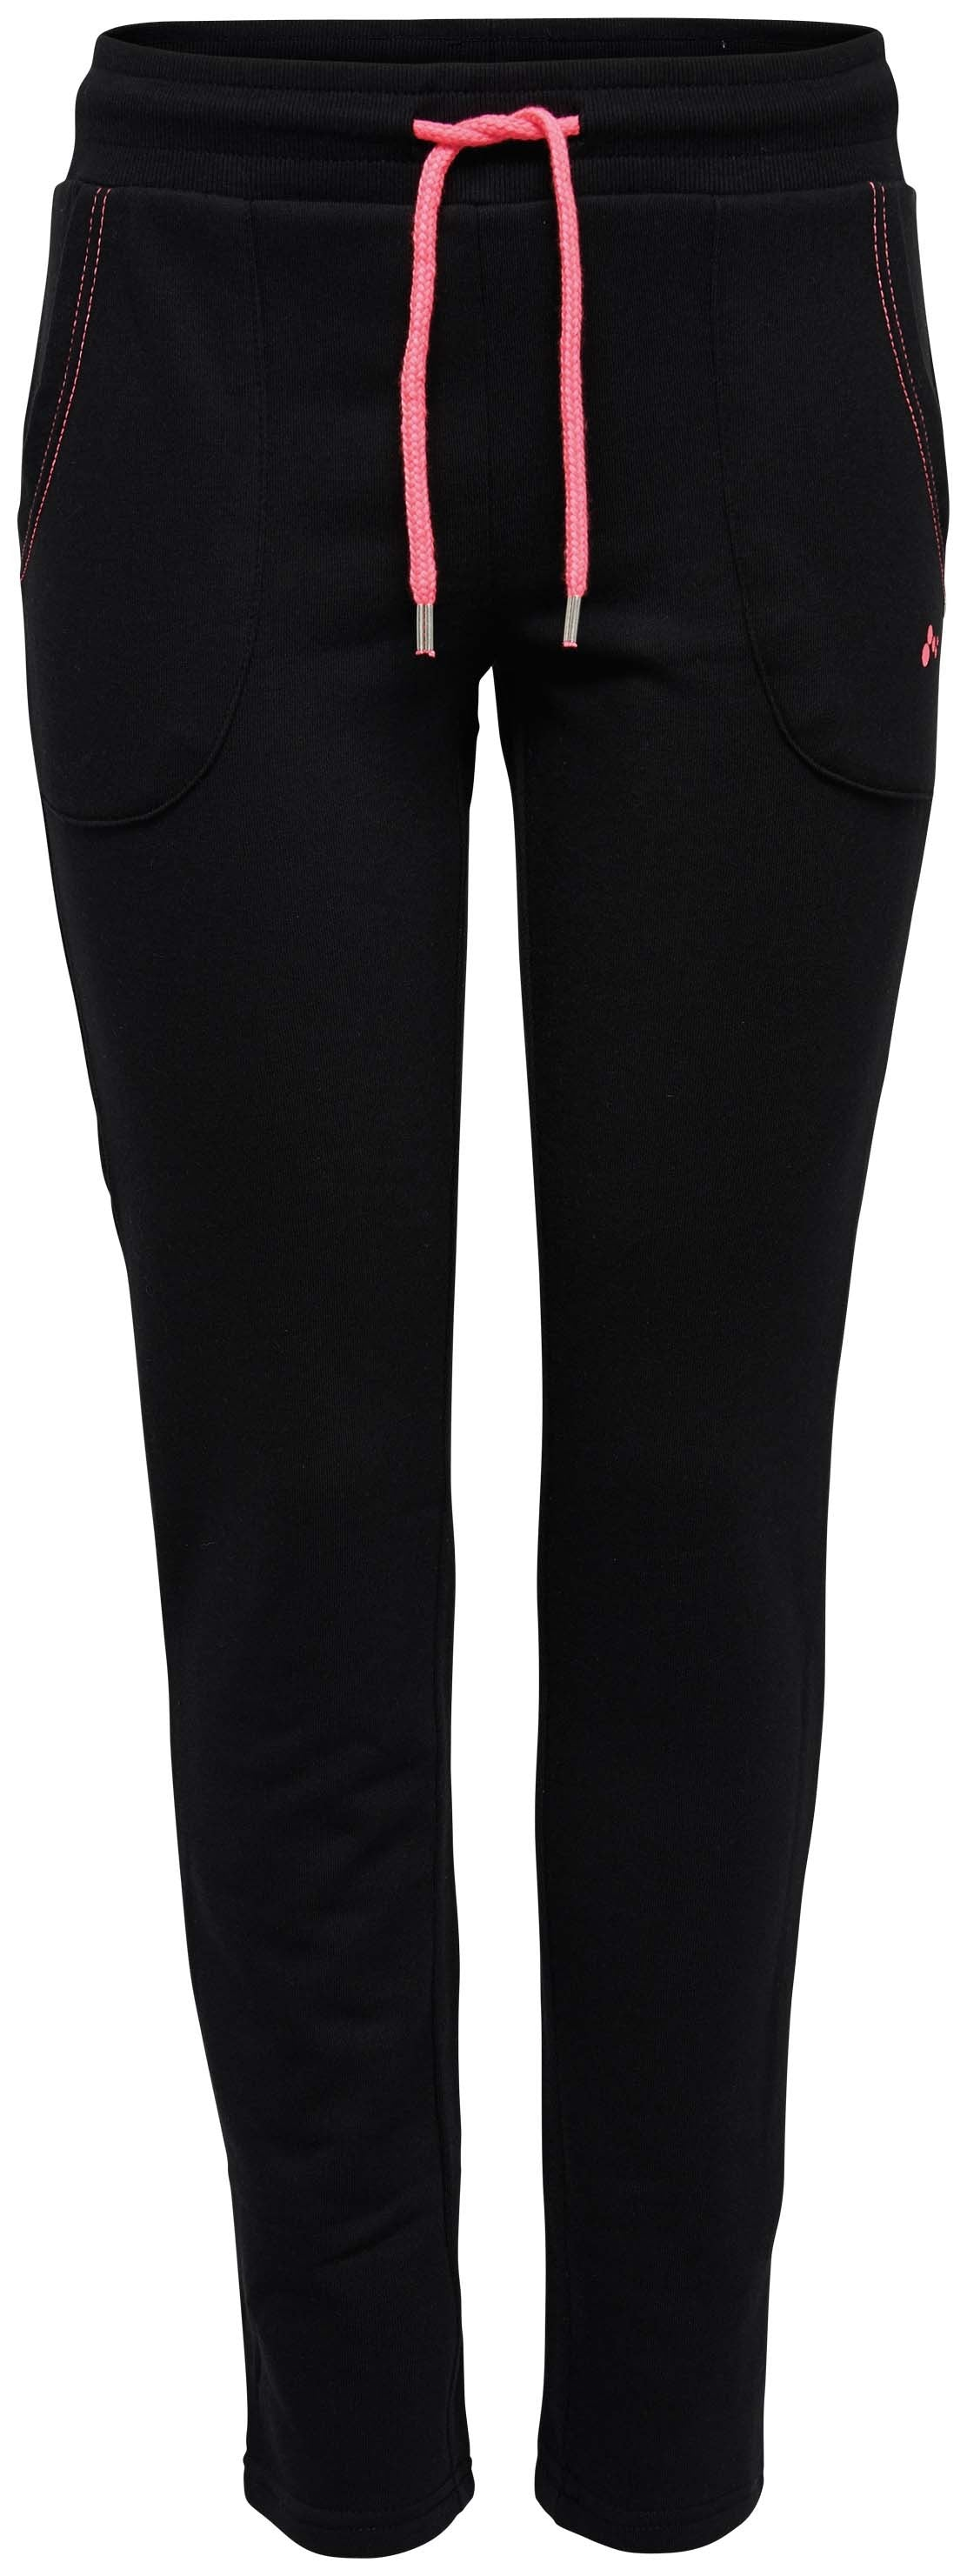 Pant-GERTRUDE SWEAT PANT BLACK